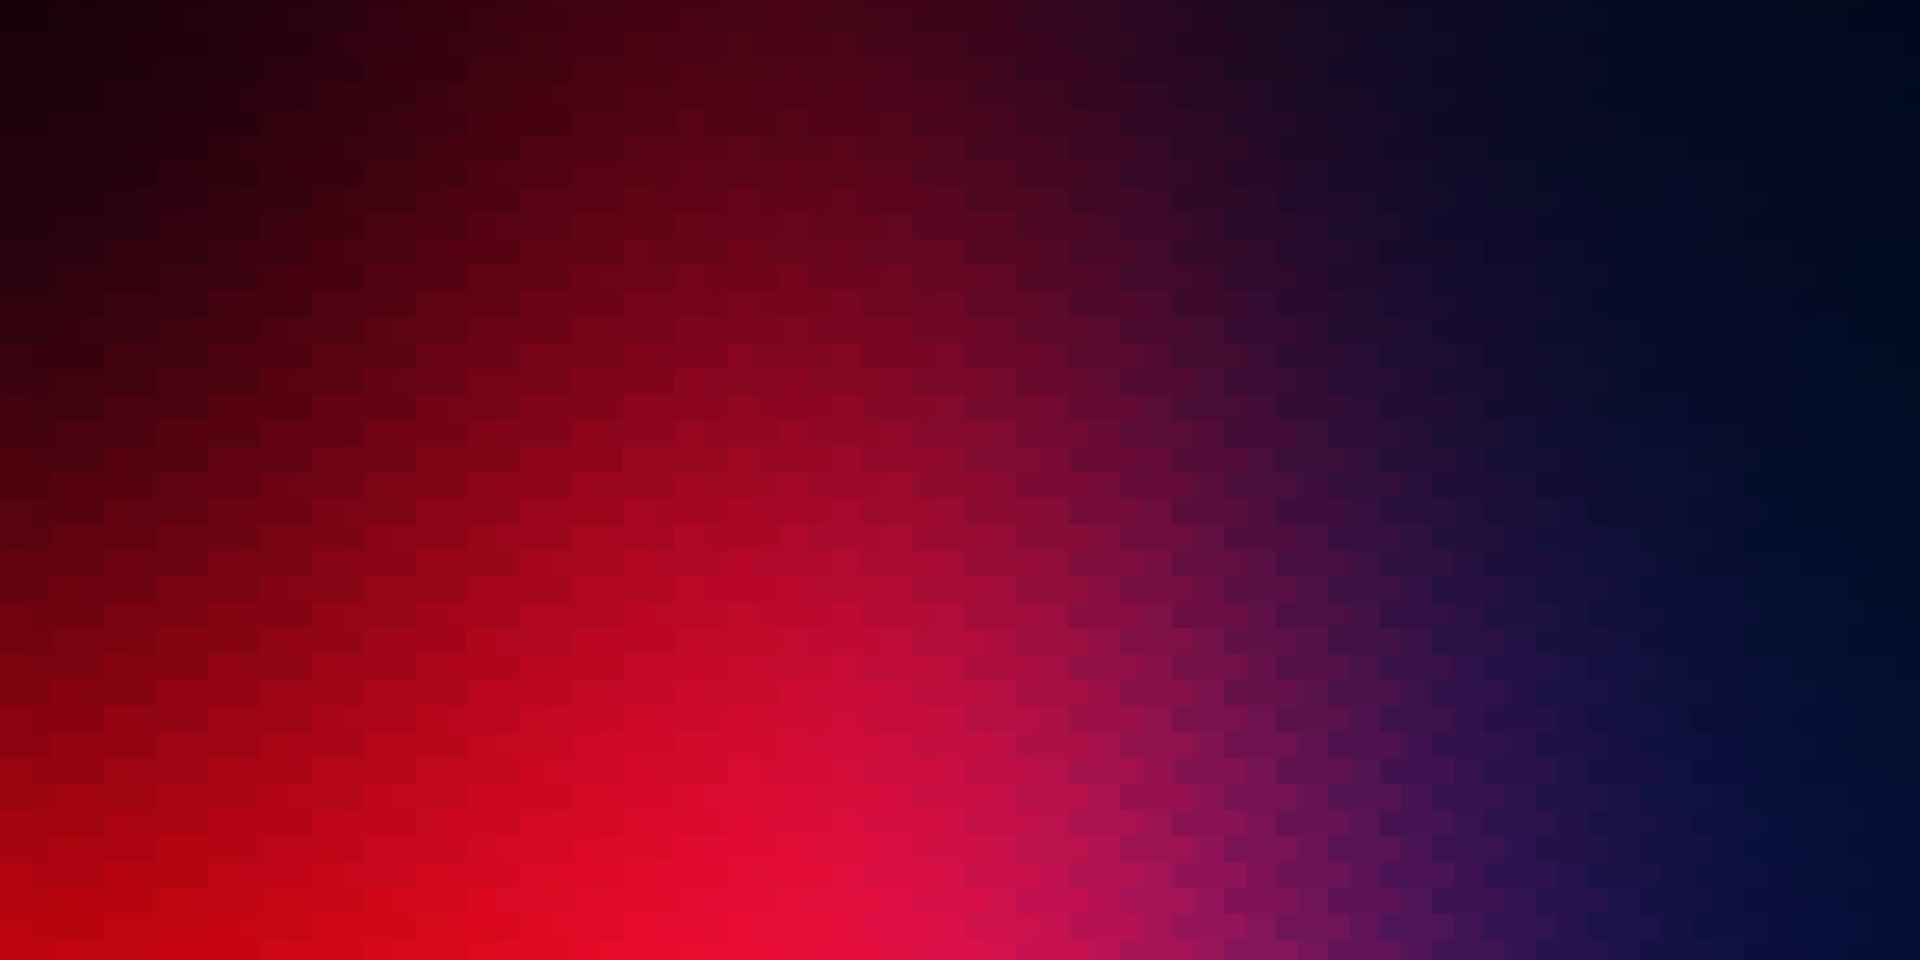 Light Blue, Red vector pattern in square style.